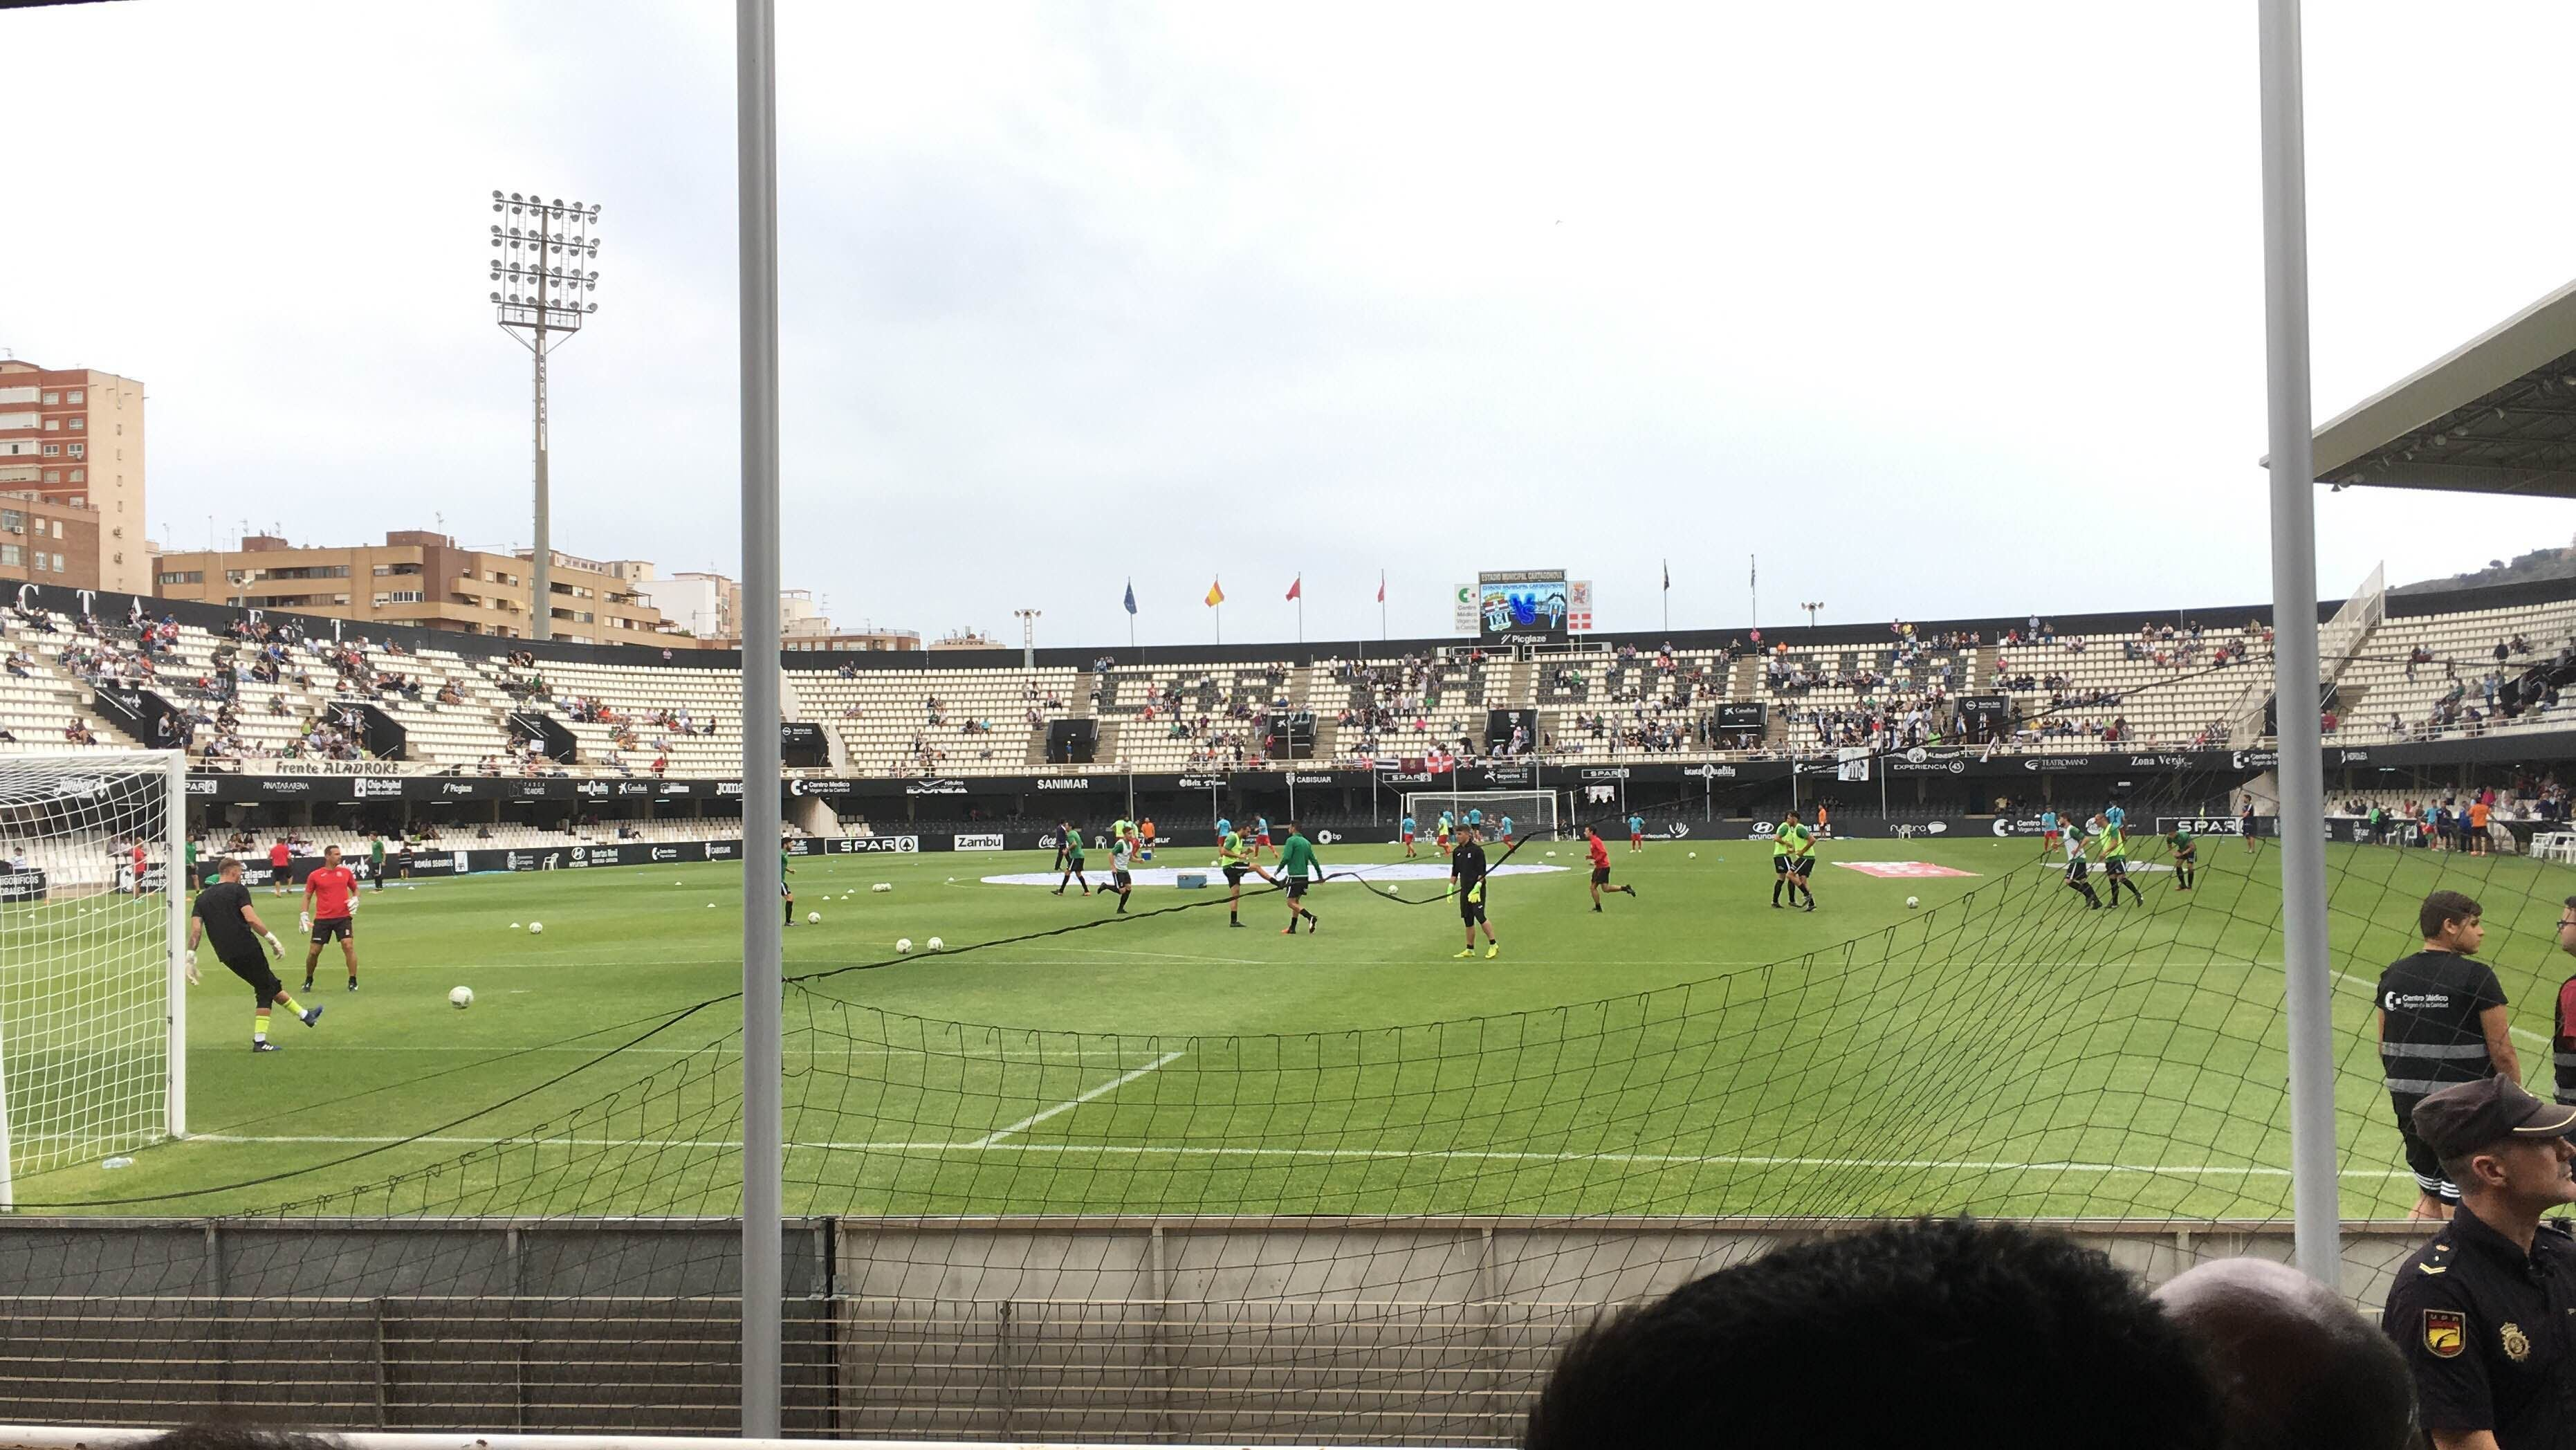 Estadio de fútbol en Estadio Cartagonova